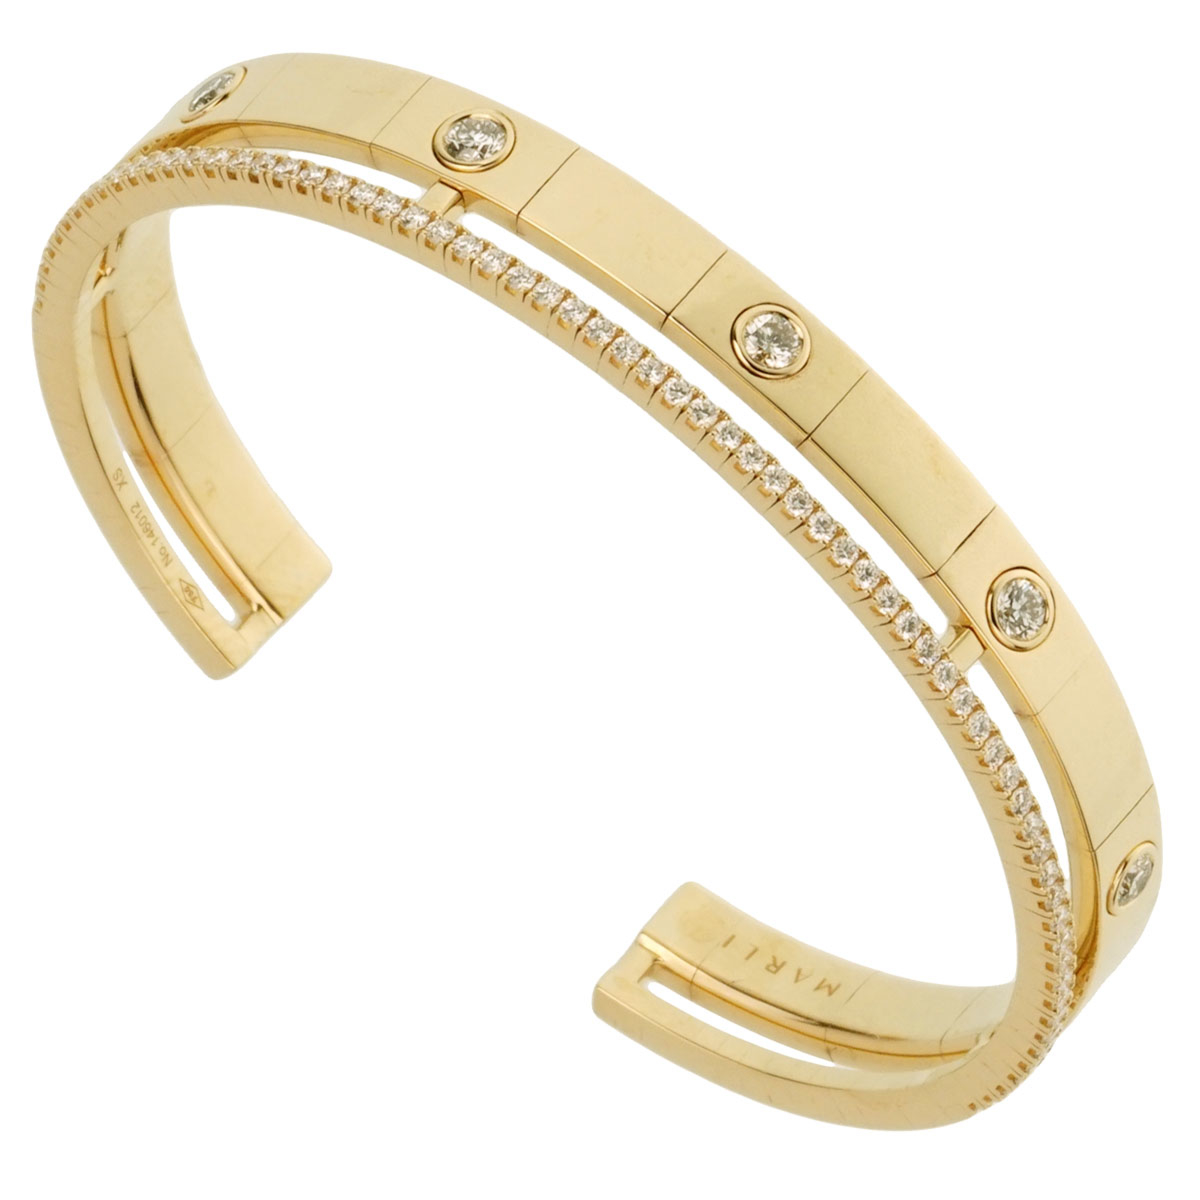 Marli Diamond Yellow Gold Slip On Cuff Bangle Bracelet - Marli Jewelry